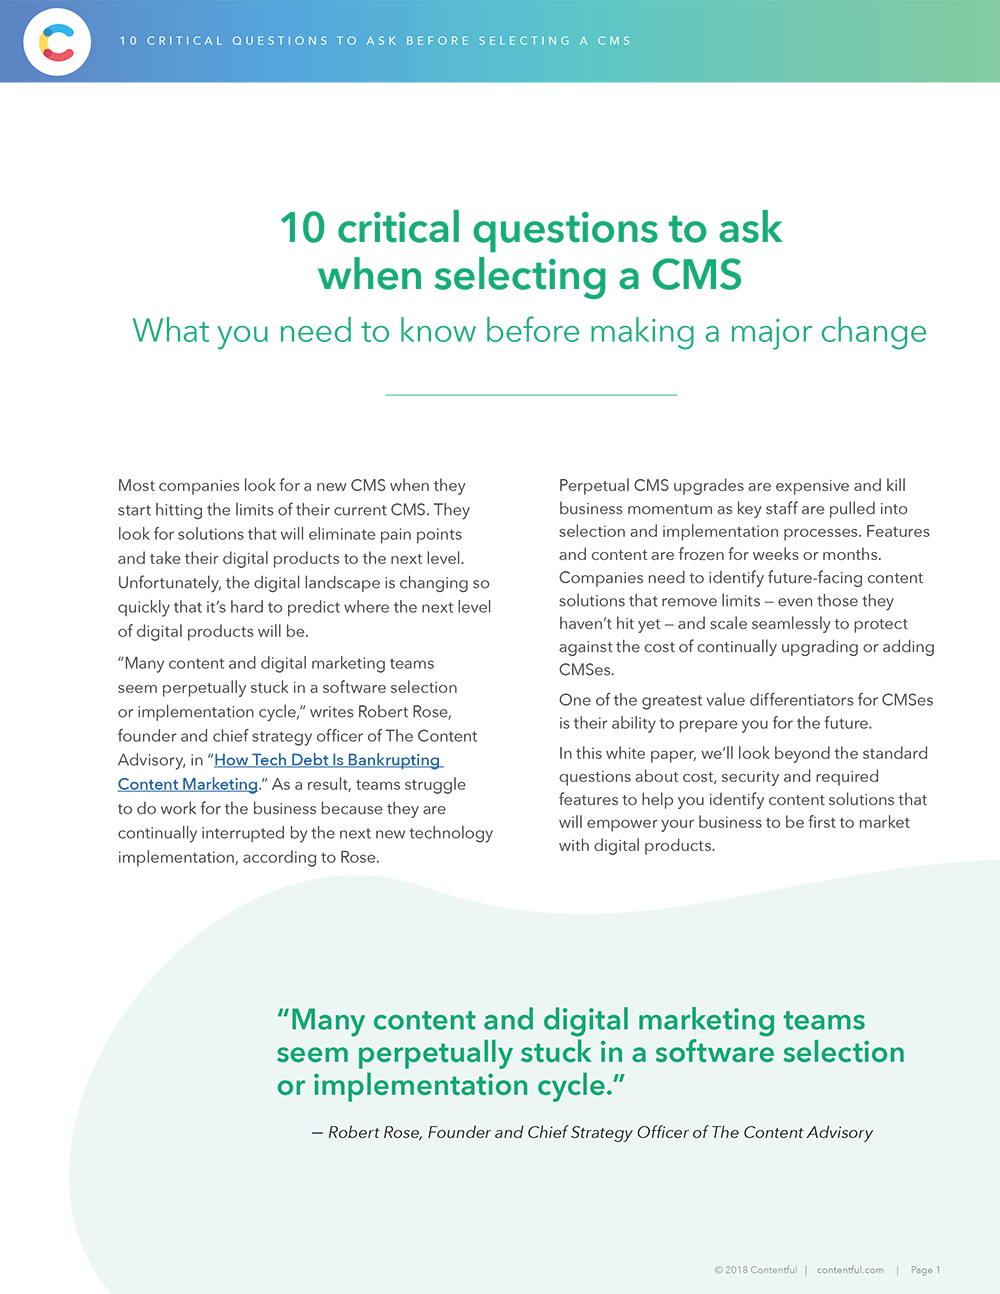 WhitePaper 10 Critical Questions v2-2